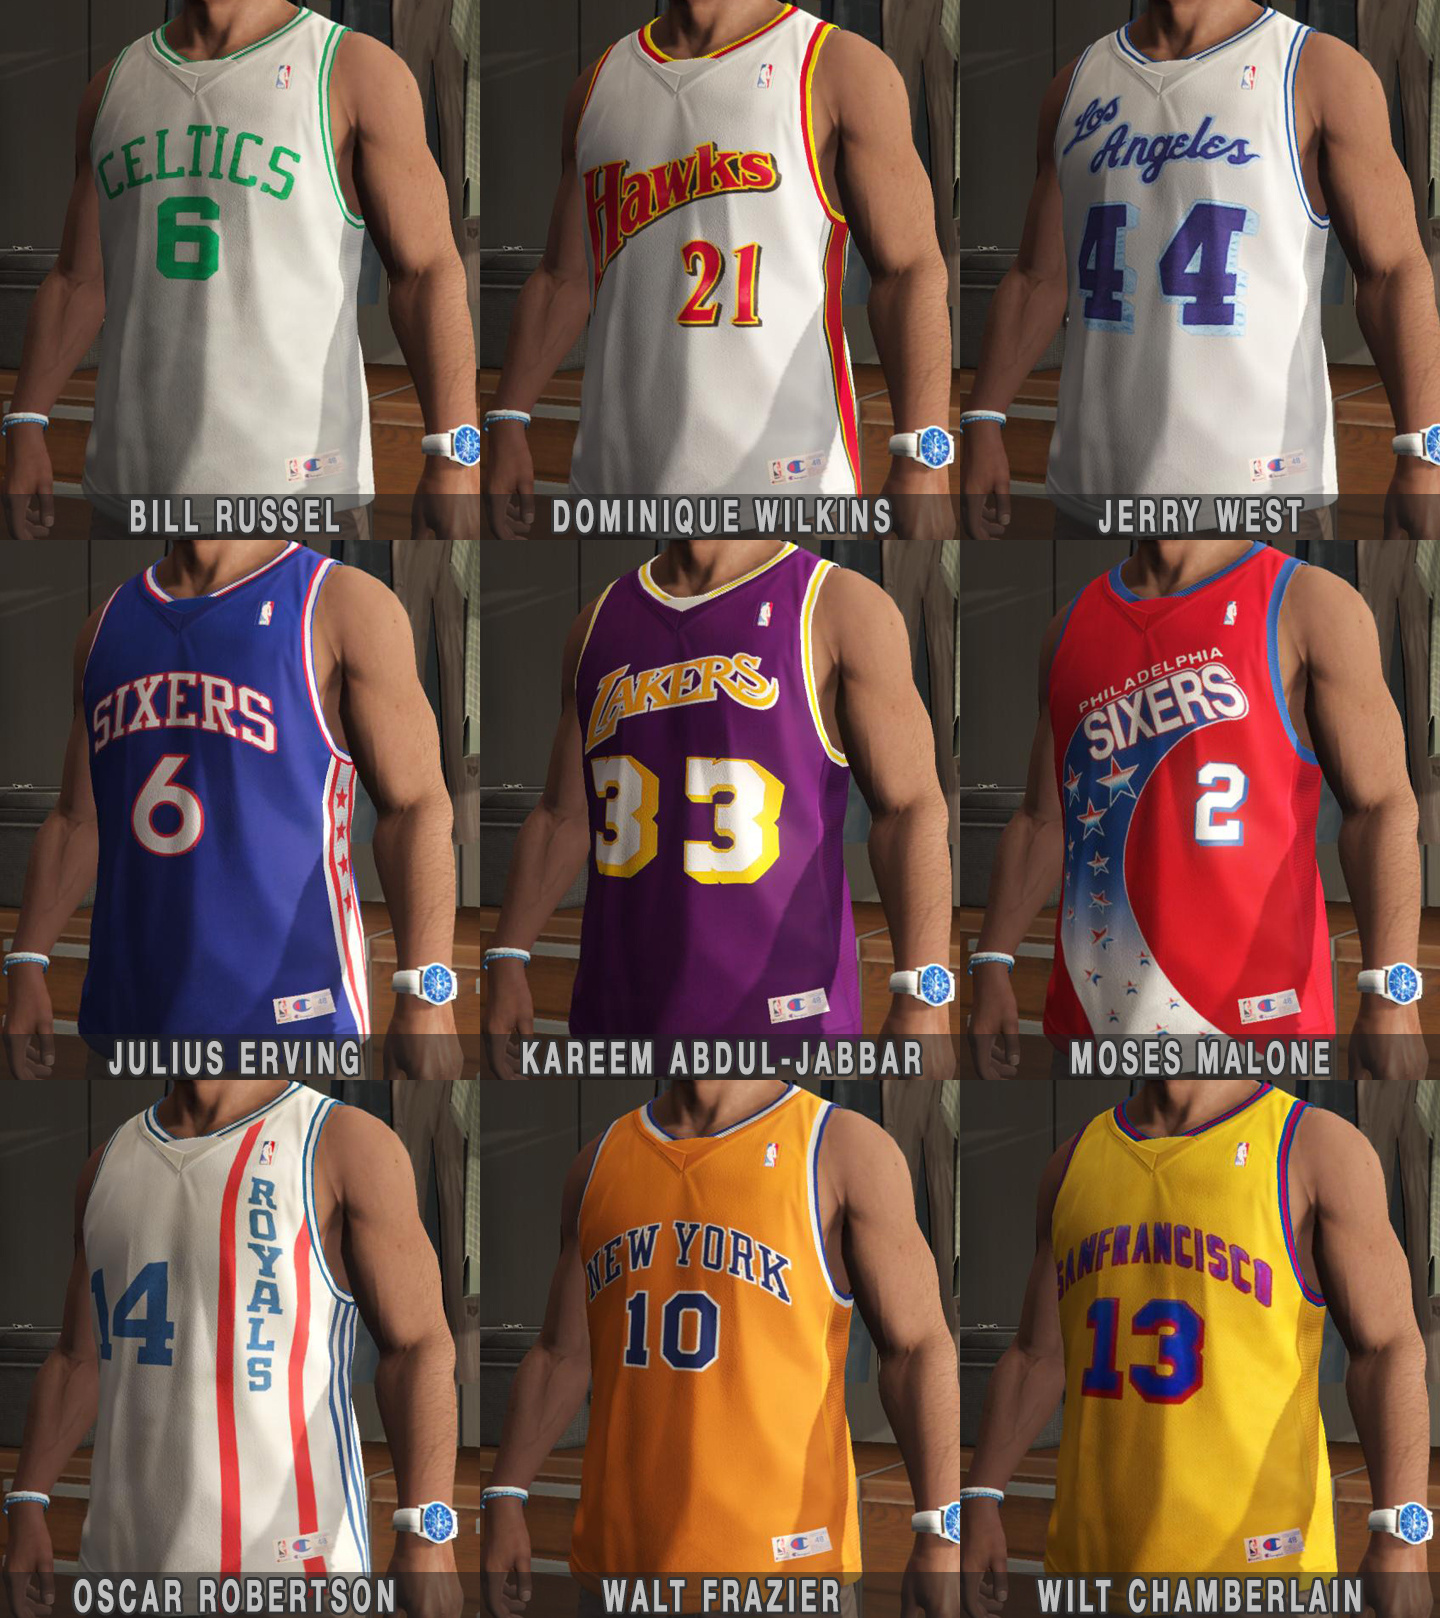 Franklin Shirts Pack Nba The Legends further Best Basketball Players By Uniform additionally Tiny Archibald together with Thunder Alternate Jerseys further The Original Collectors Series Cincinnati Gardens Museum Sports Memorabilia Vintage Concert Posters. on oscar robertson cincinnati royals jersey